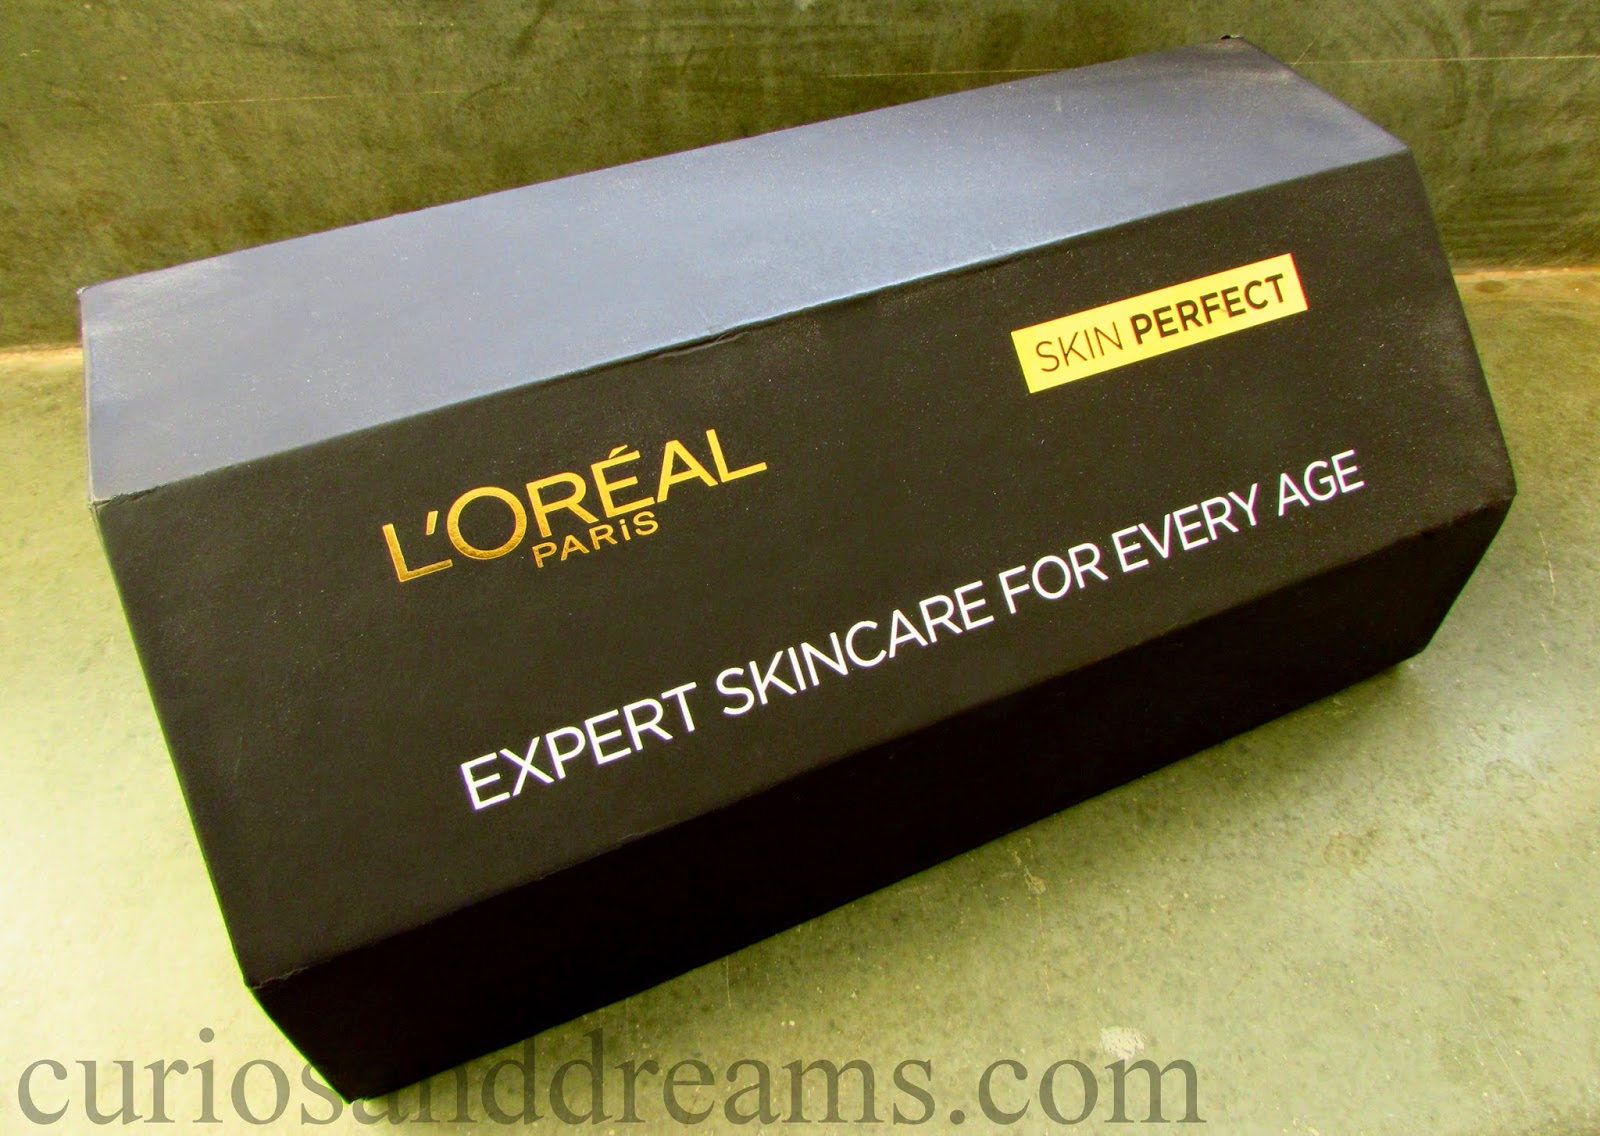 L'Oreal Paris Skin Perfect, L'Oreal Paris Skin Perfect india